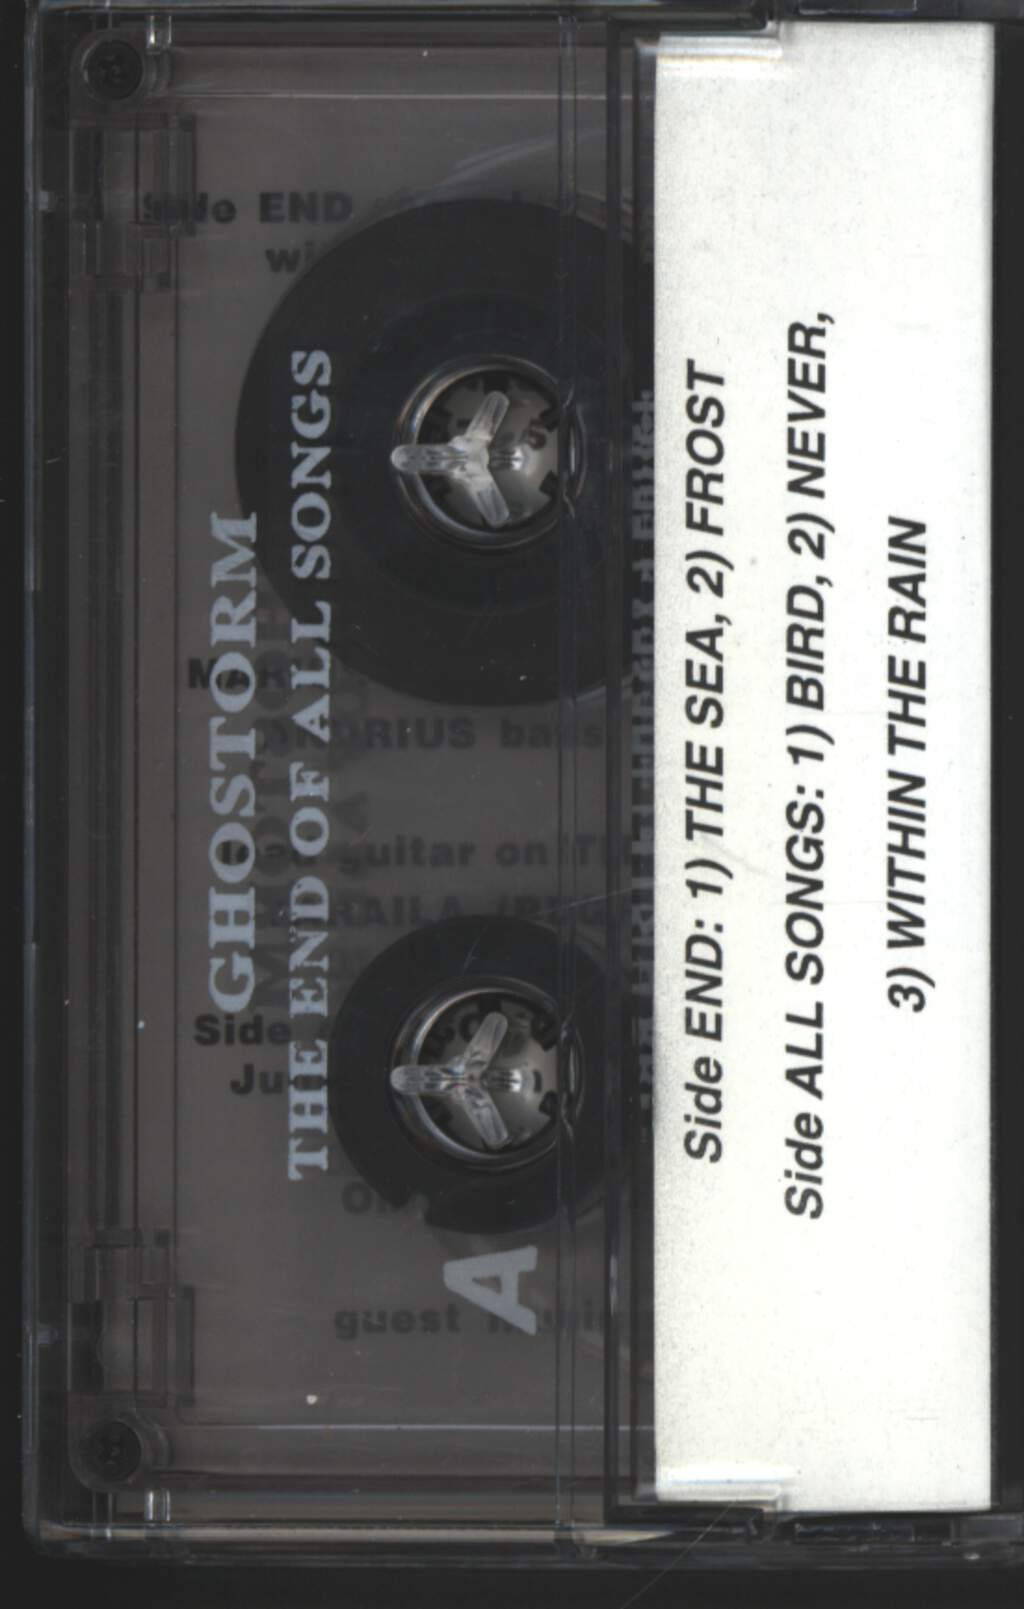 Ghostorm: The End Of All Songs, Compact Cassette